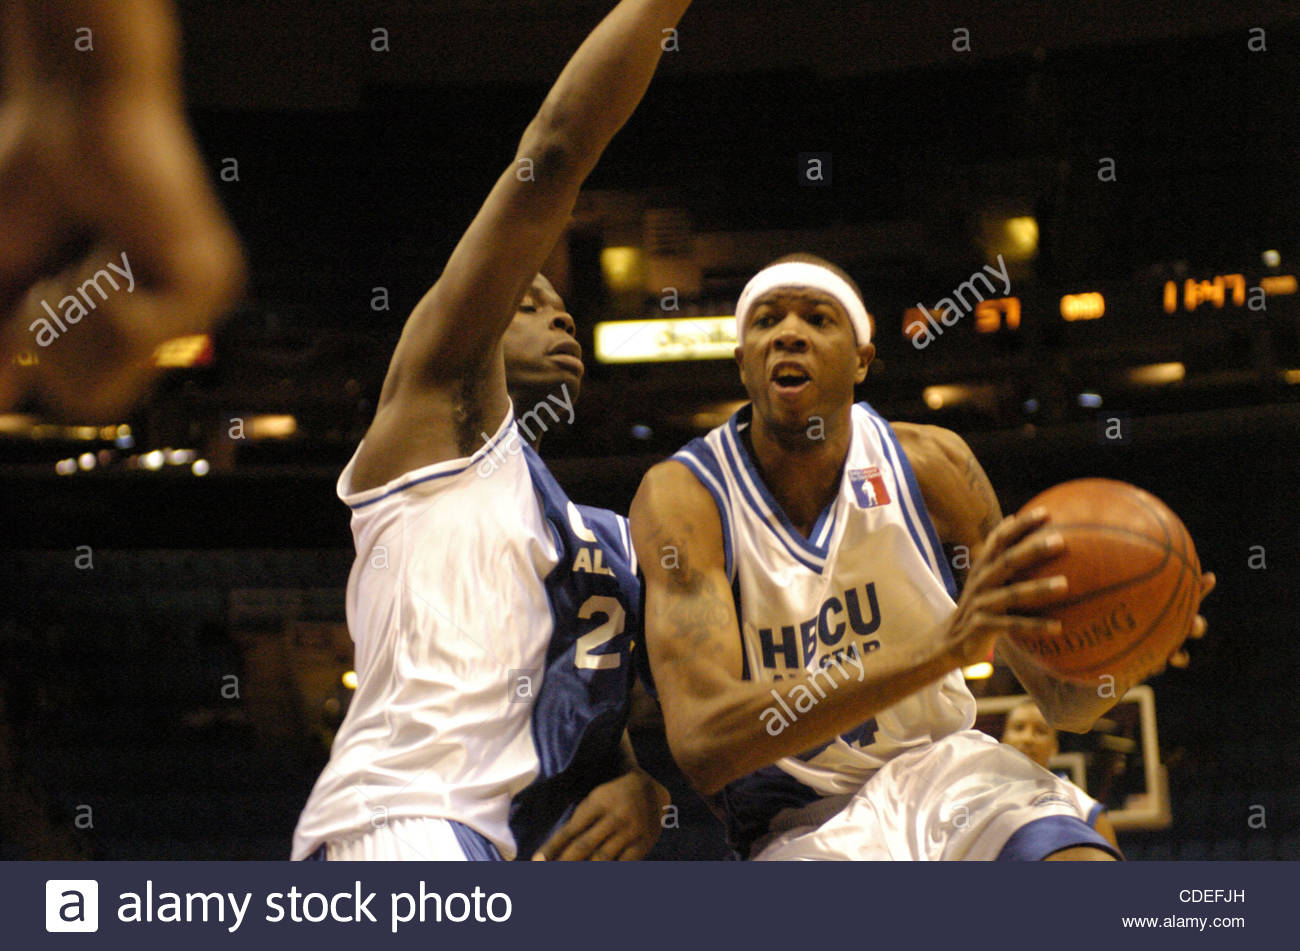 Apr. 16, 2005 - Cleveland, OH, USA - BasketballKenyon Gamble, playing for the HBCU All-Stars drives to the Stock Photo